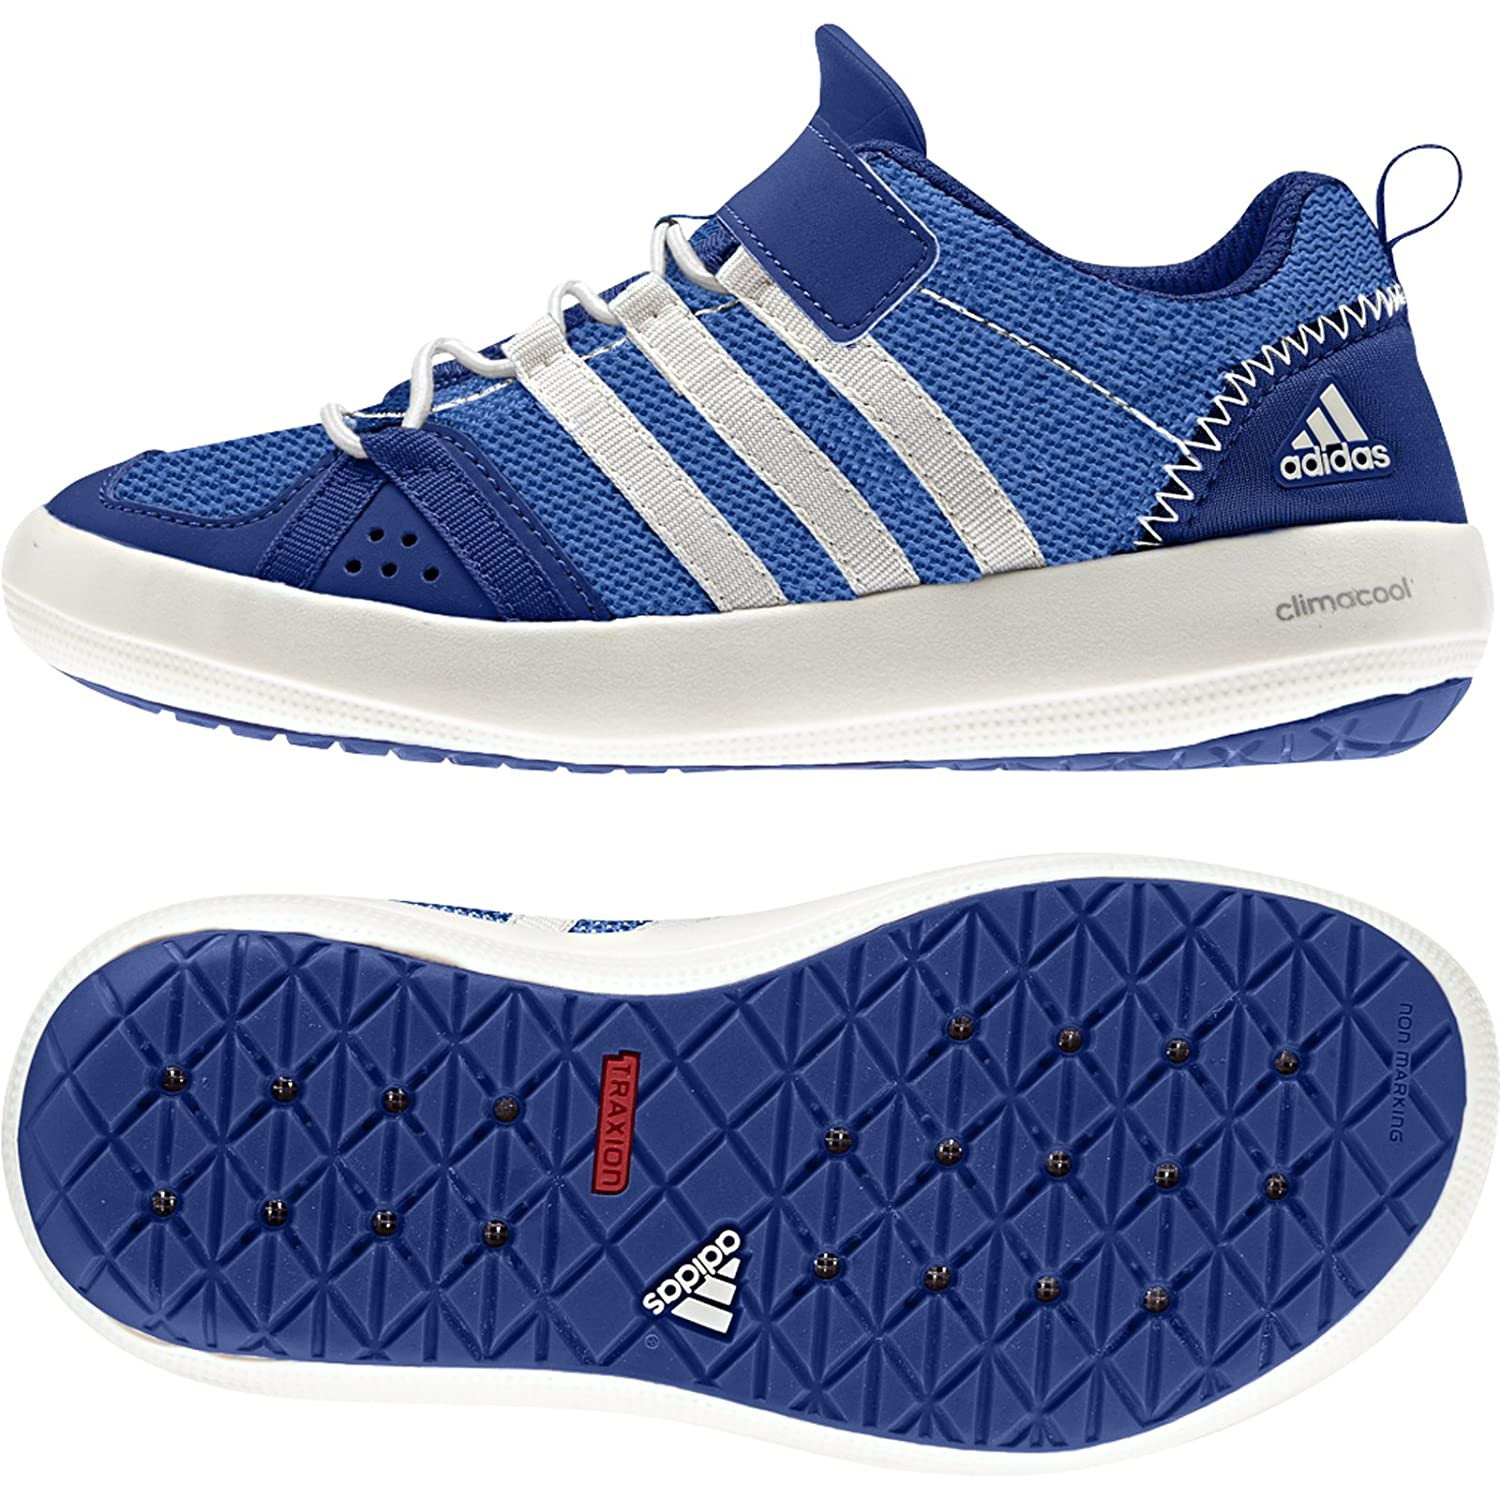 adidas climacool boat shoes review